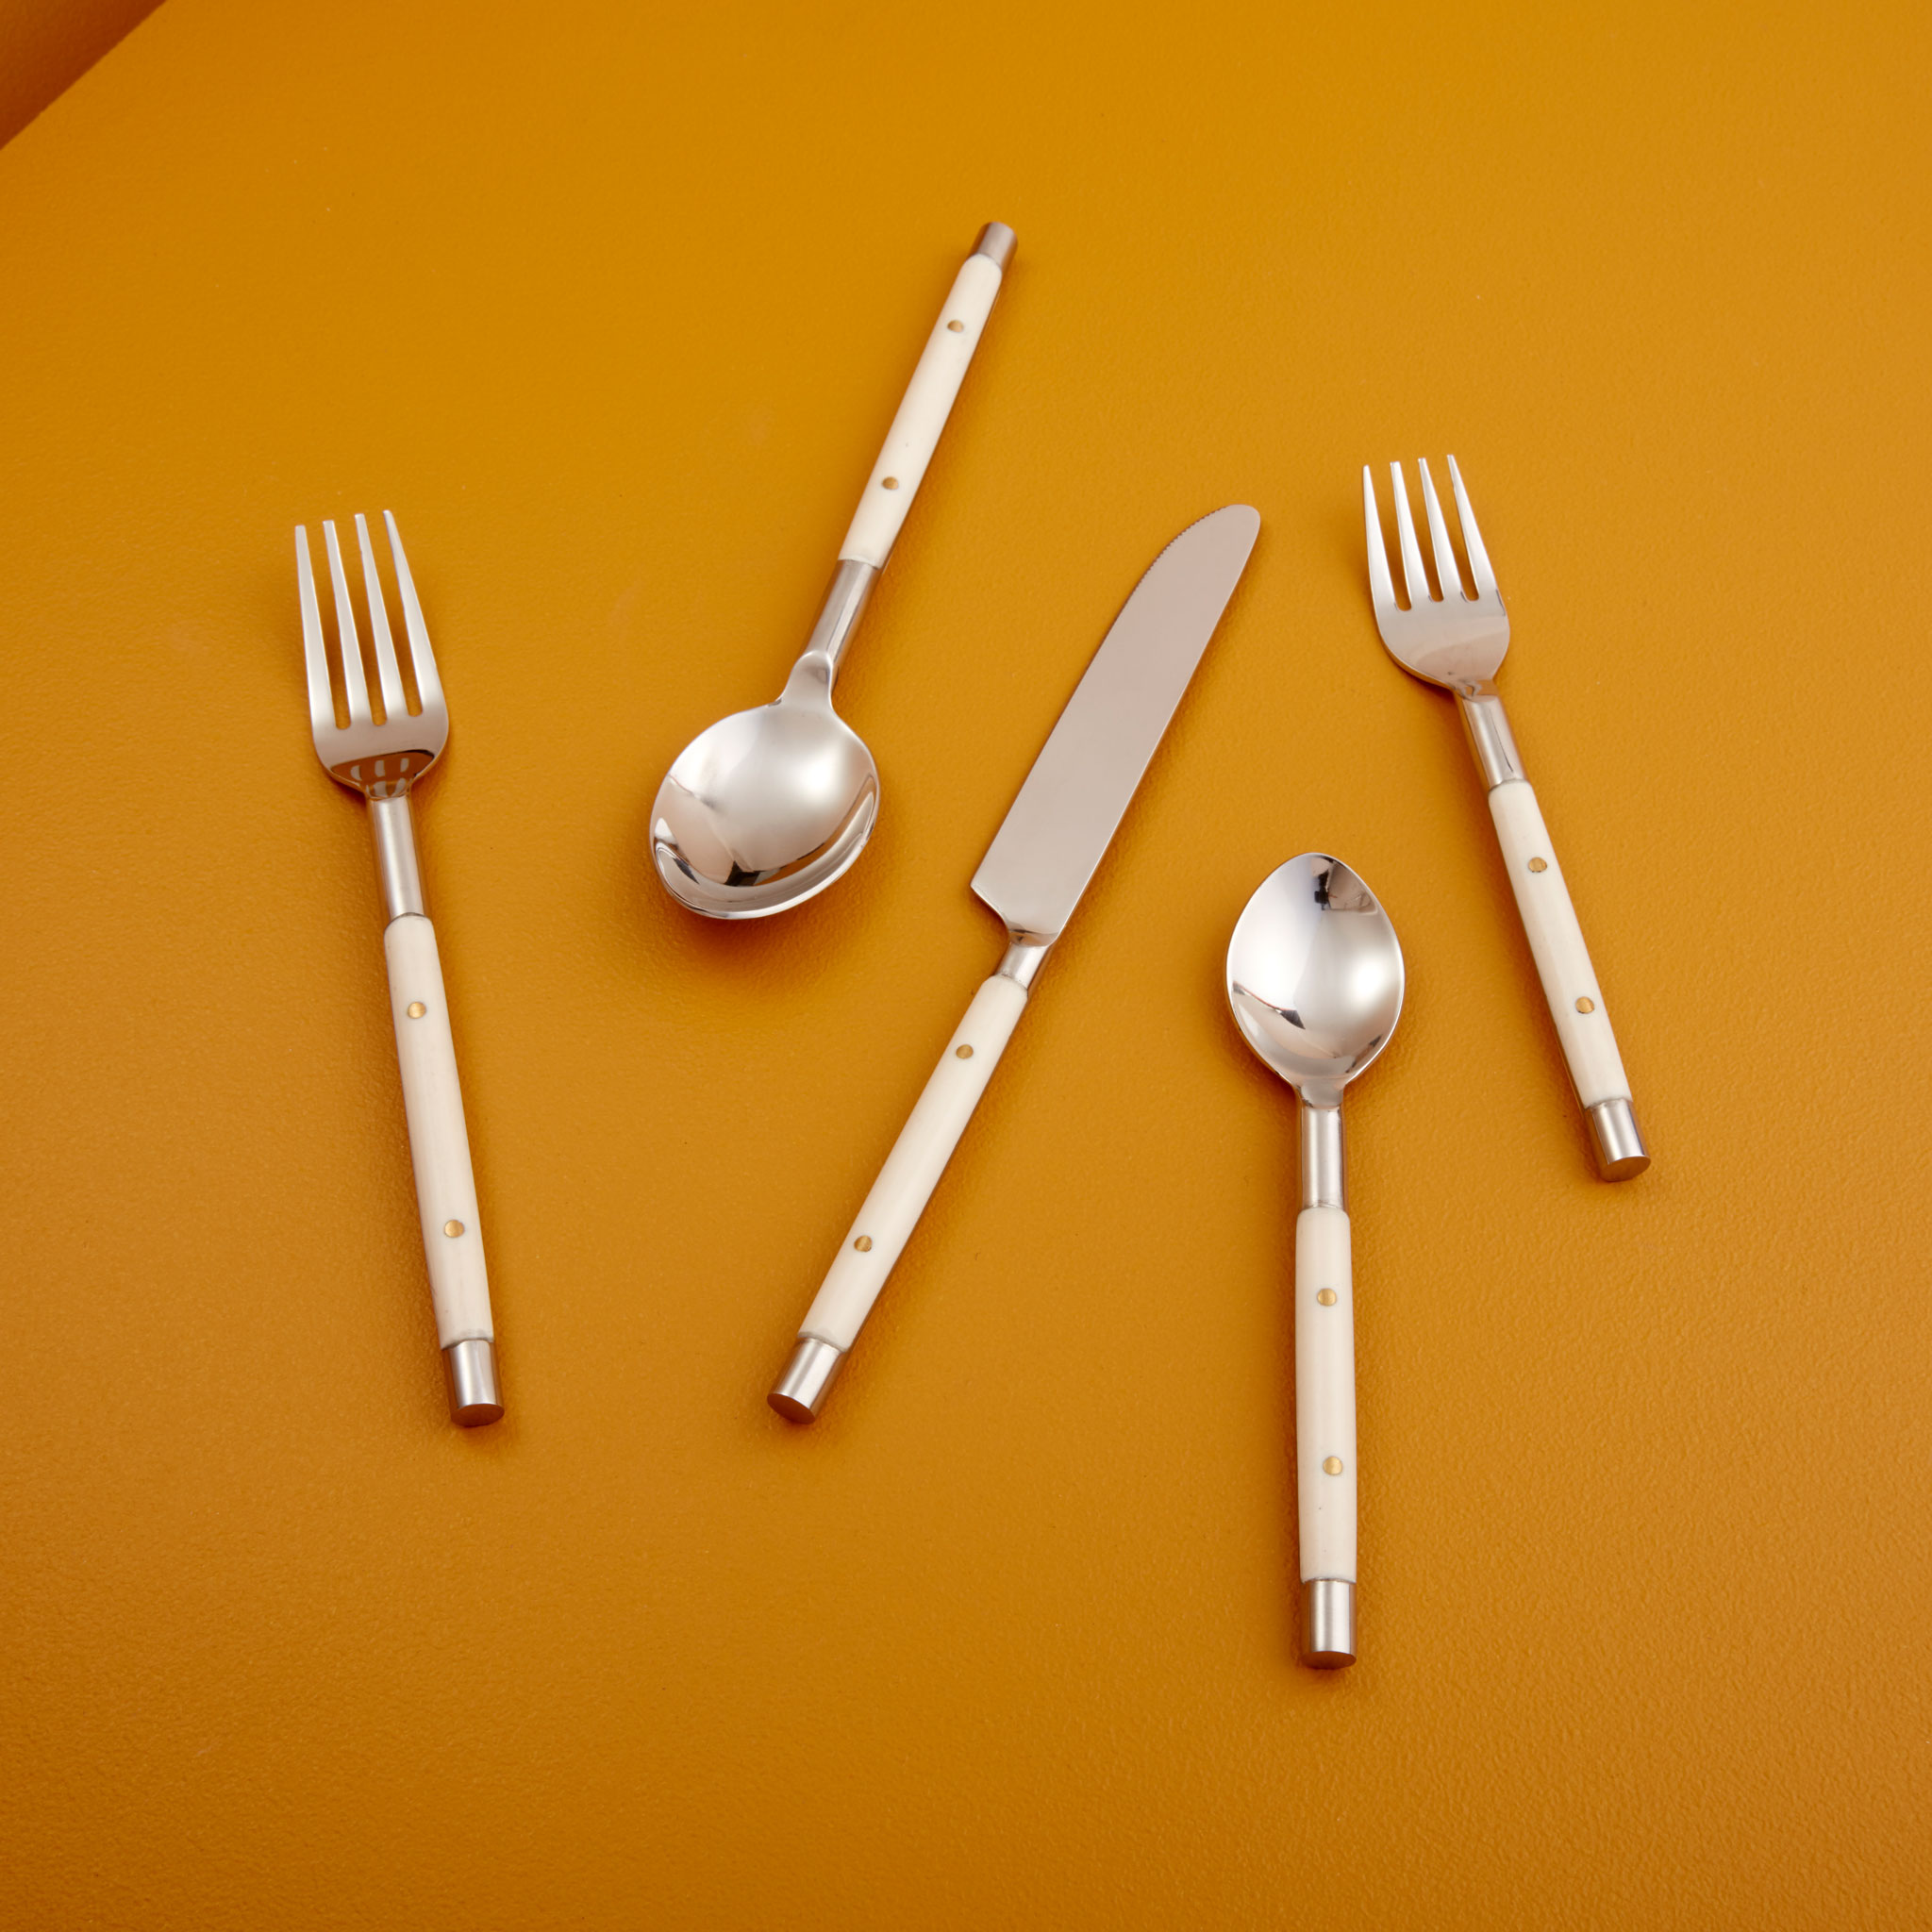 Be-Home_Stainless-with-White-Inlay-Flatware-Set-of-5_25-731